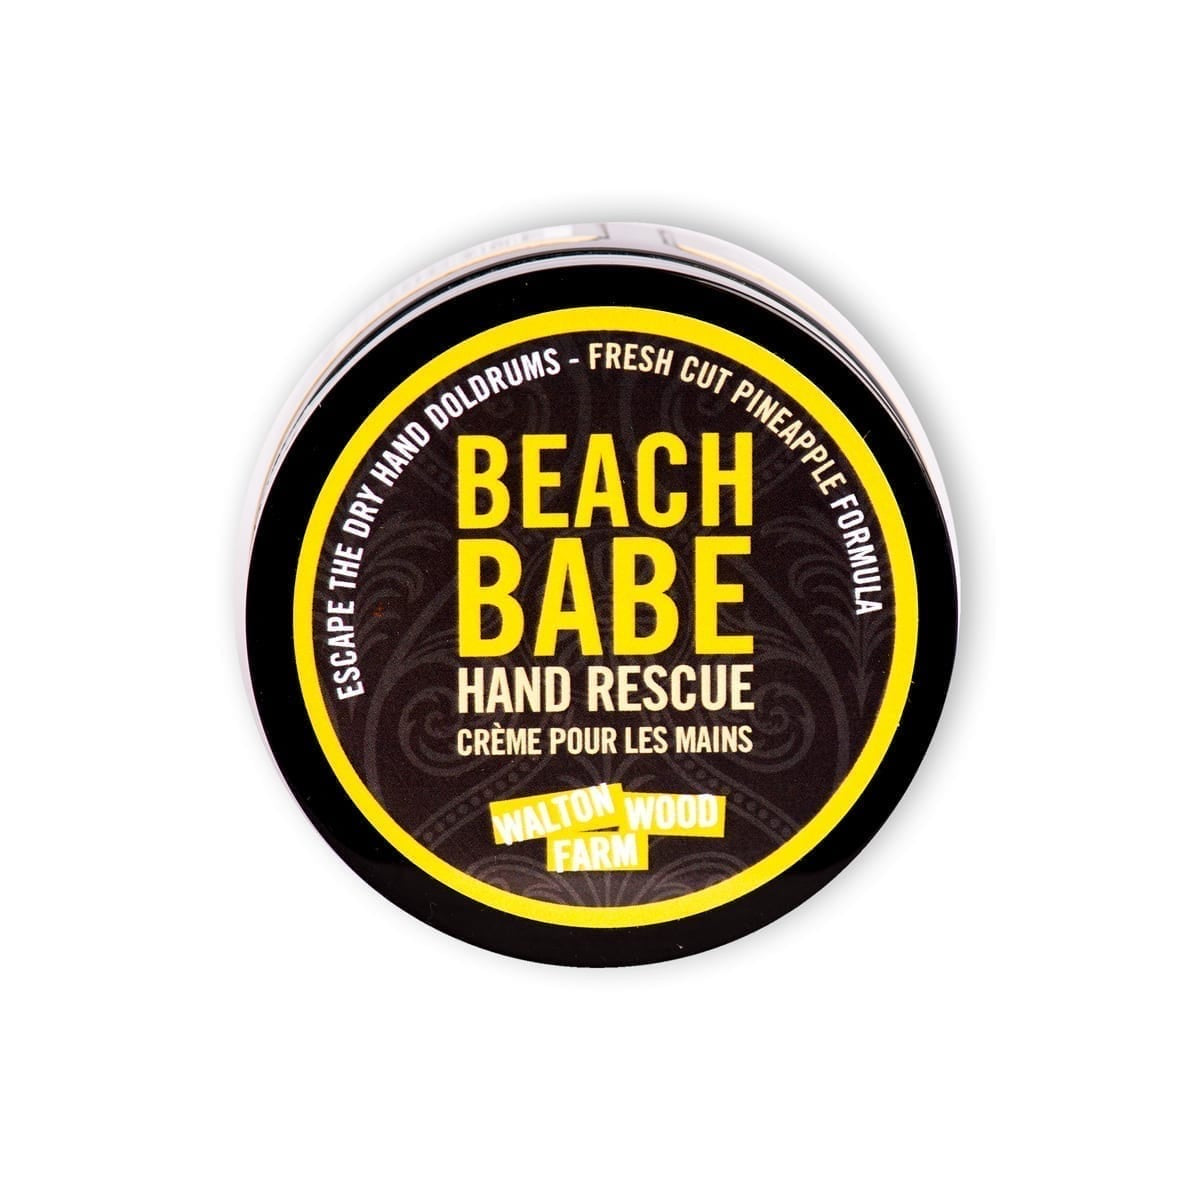 Beach babe hand rescue - 4oz